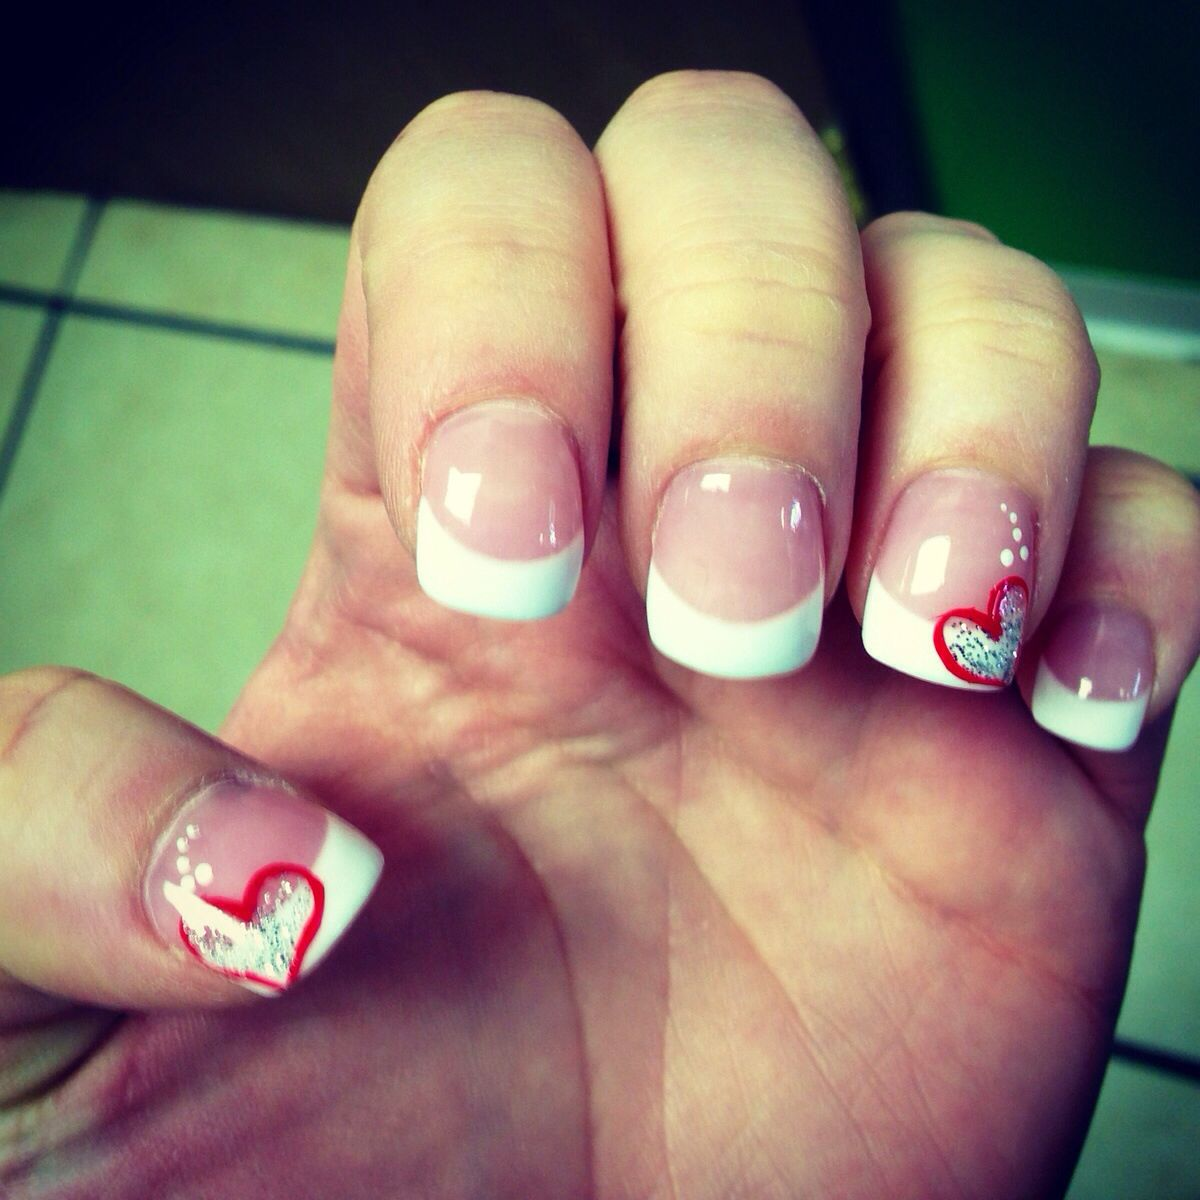 Cute french tip manicure with red hearts manicure acrylics and cute french tip manicure with red hearts heart nail designsvalentines day prinsesfo Gallery